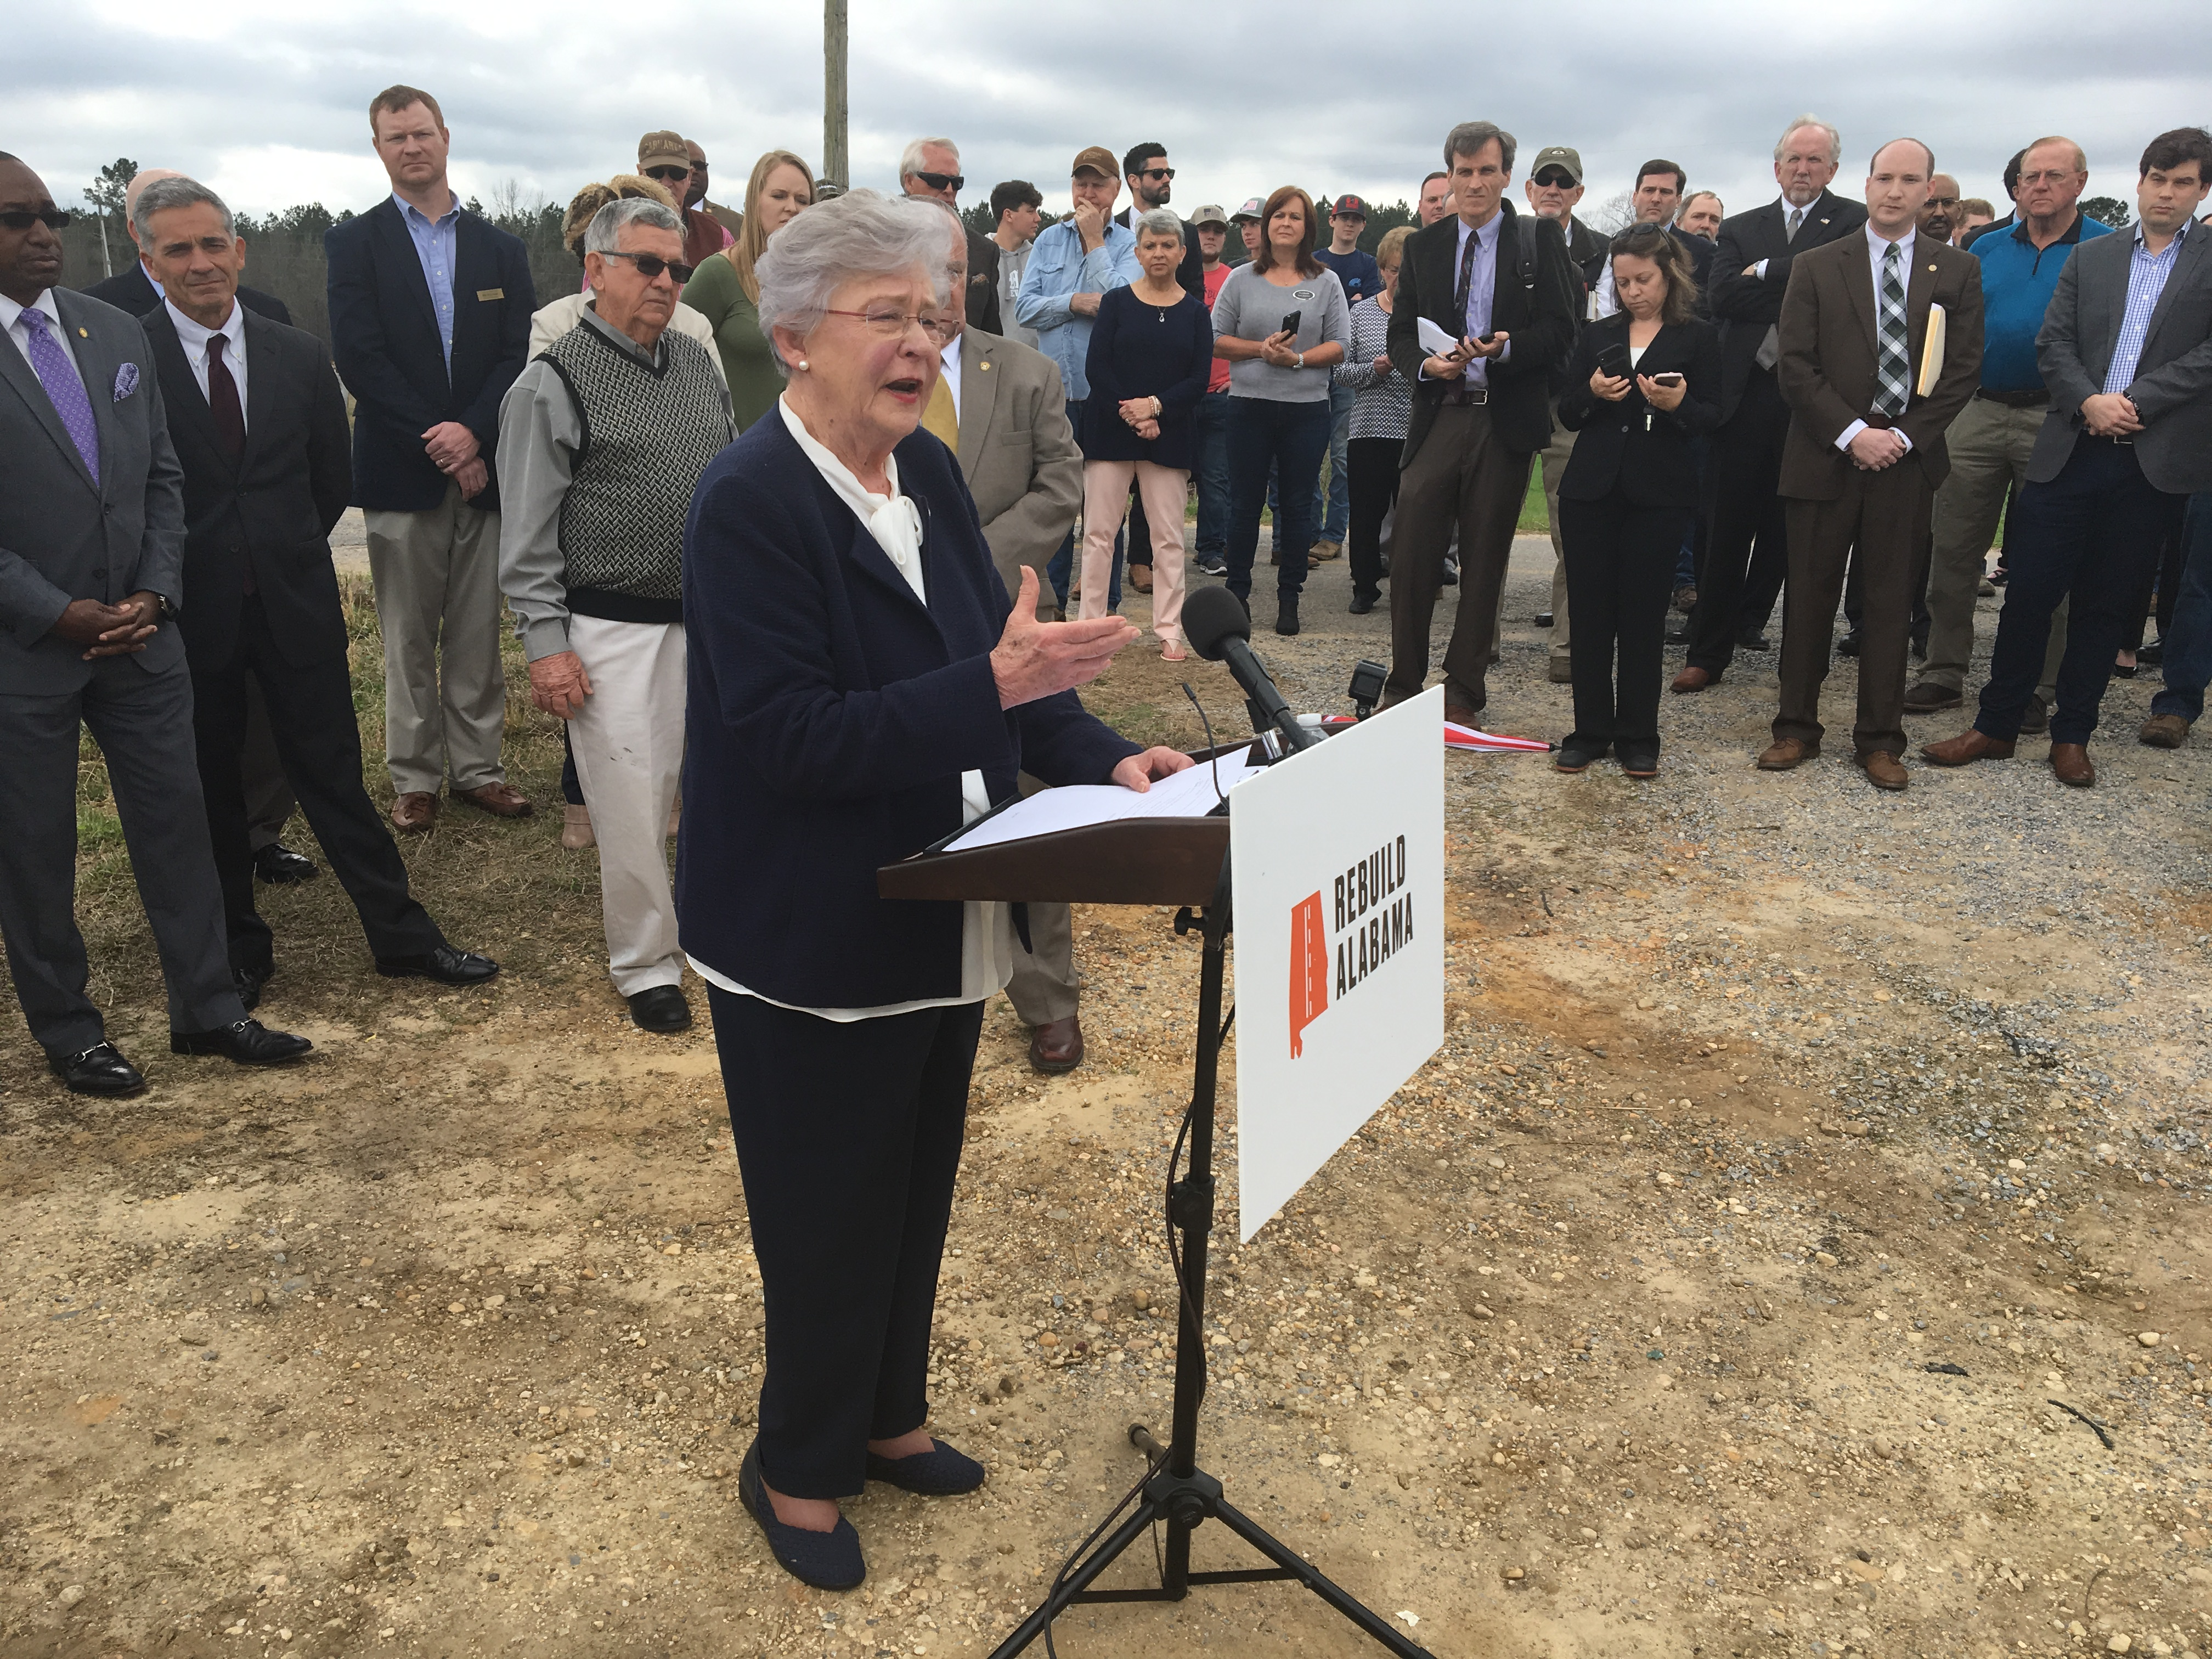 Ivey says slowing down I-10 project 'unwise,' as toll opponents call for project pause